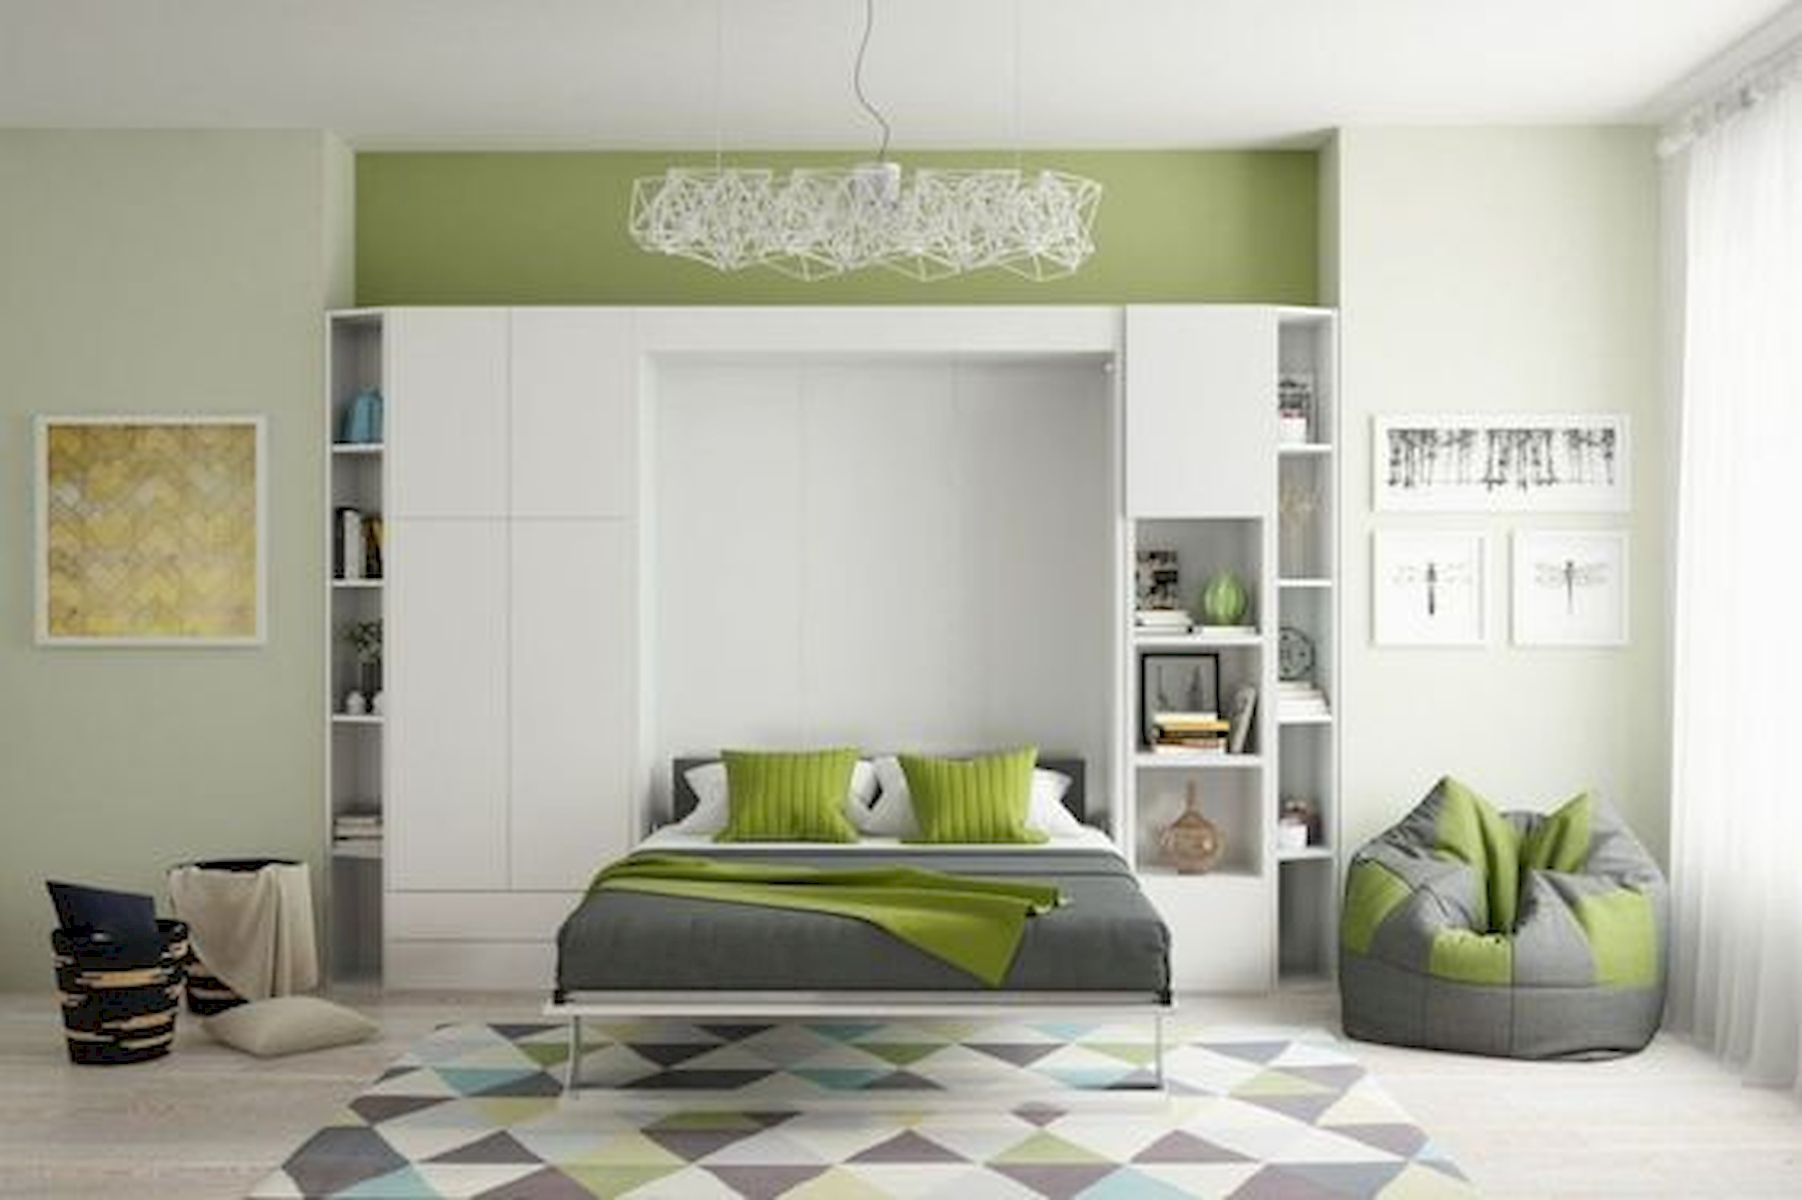 60 Brilliant Space Saving Ideas For Small Bedroom (13)